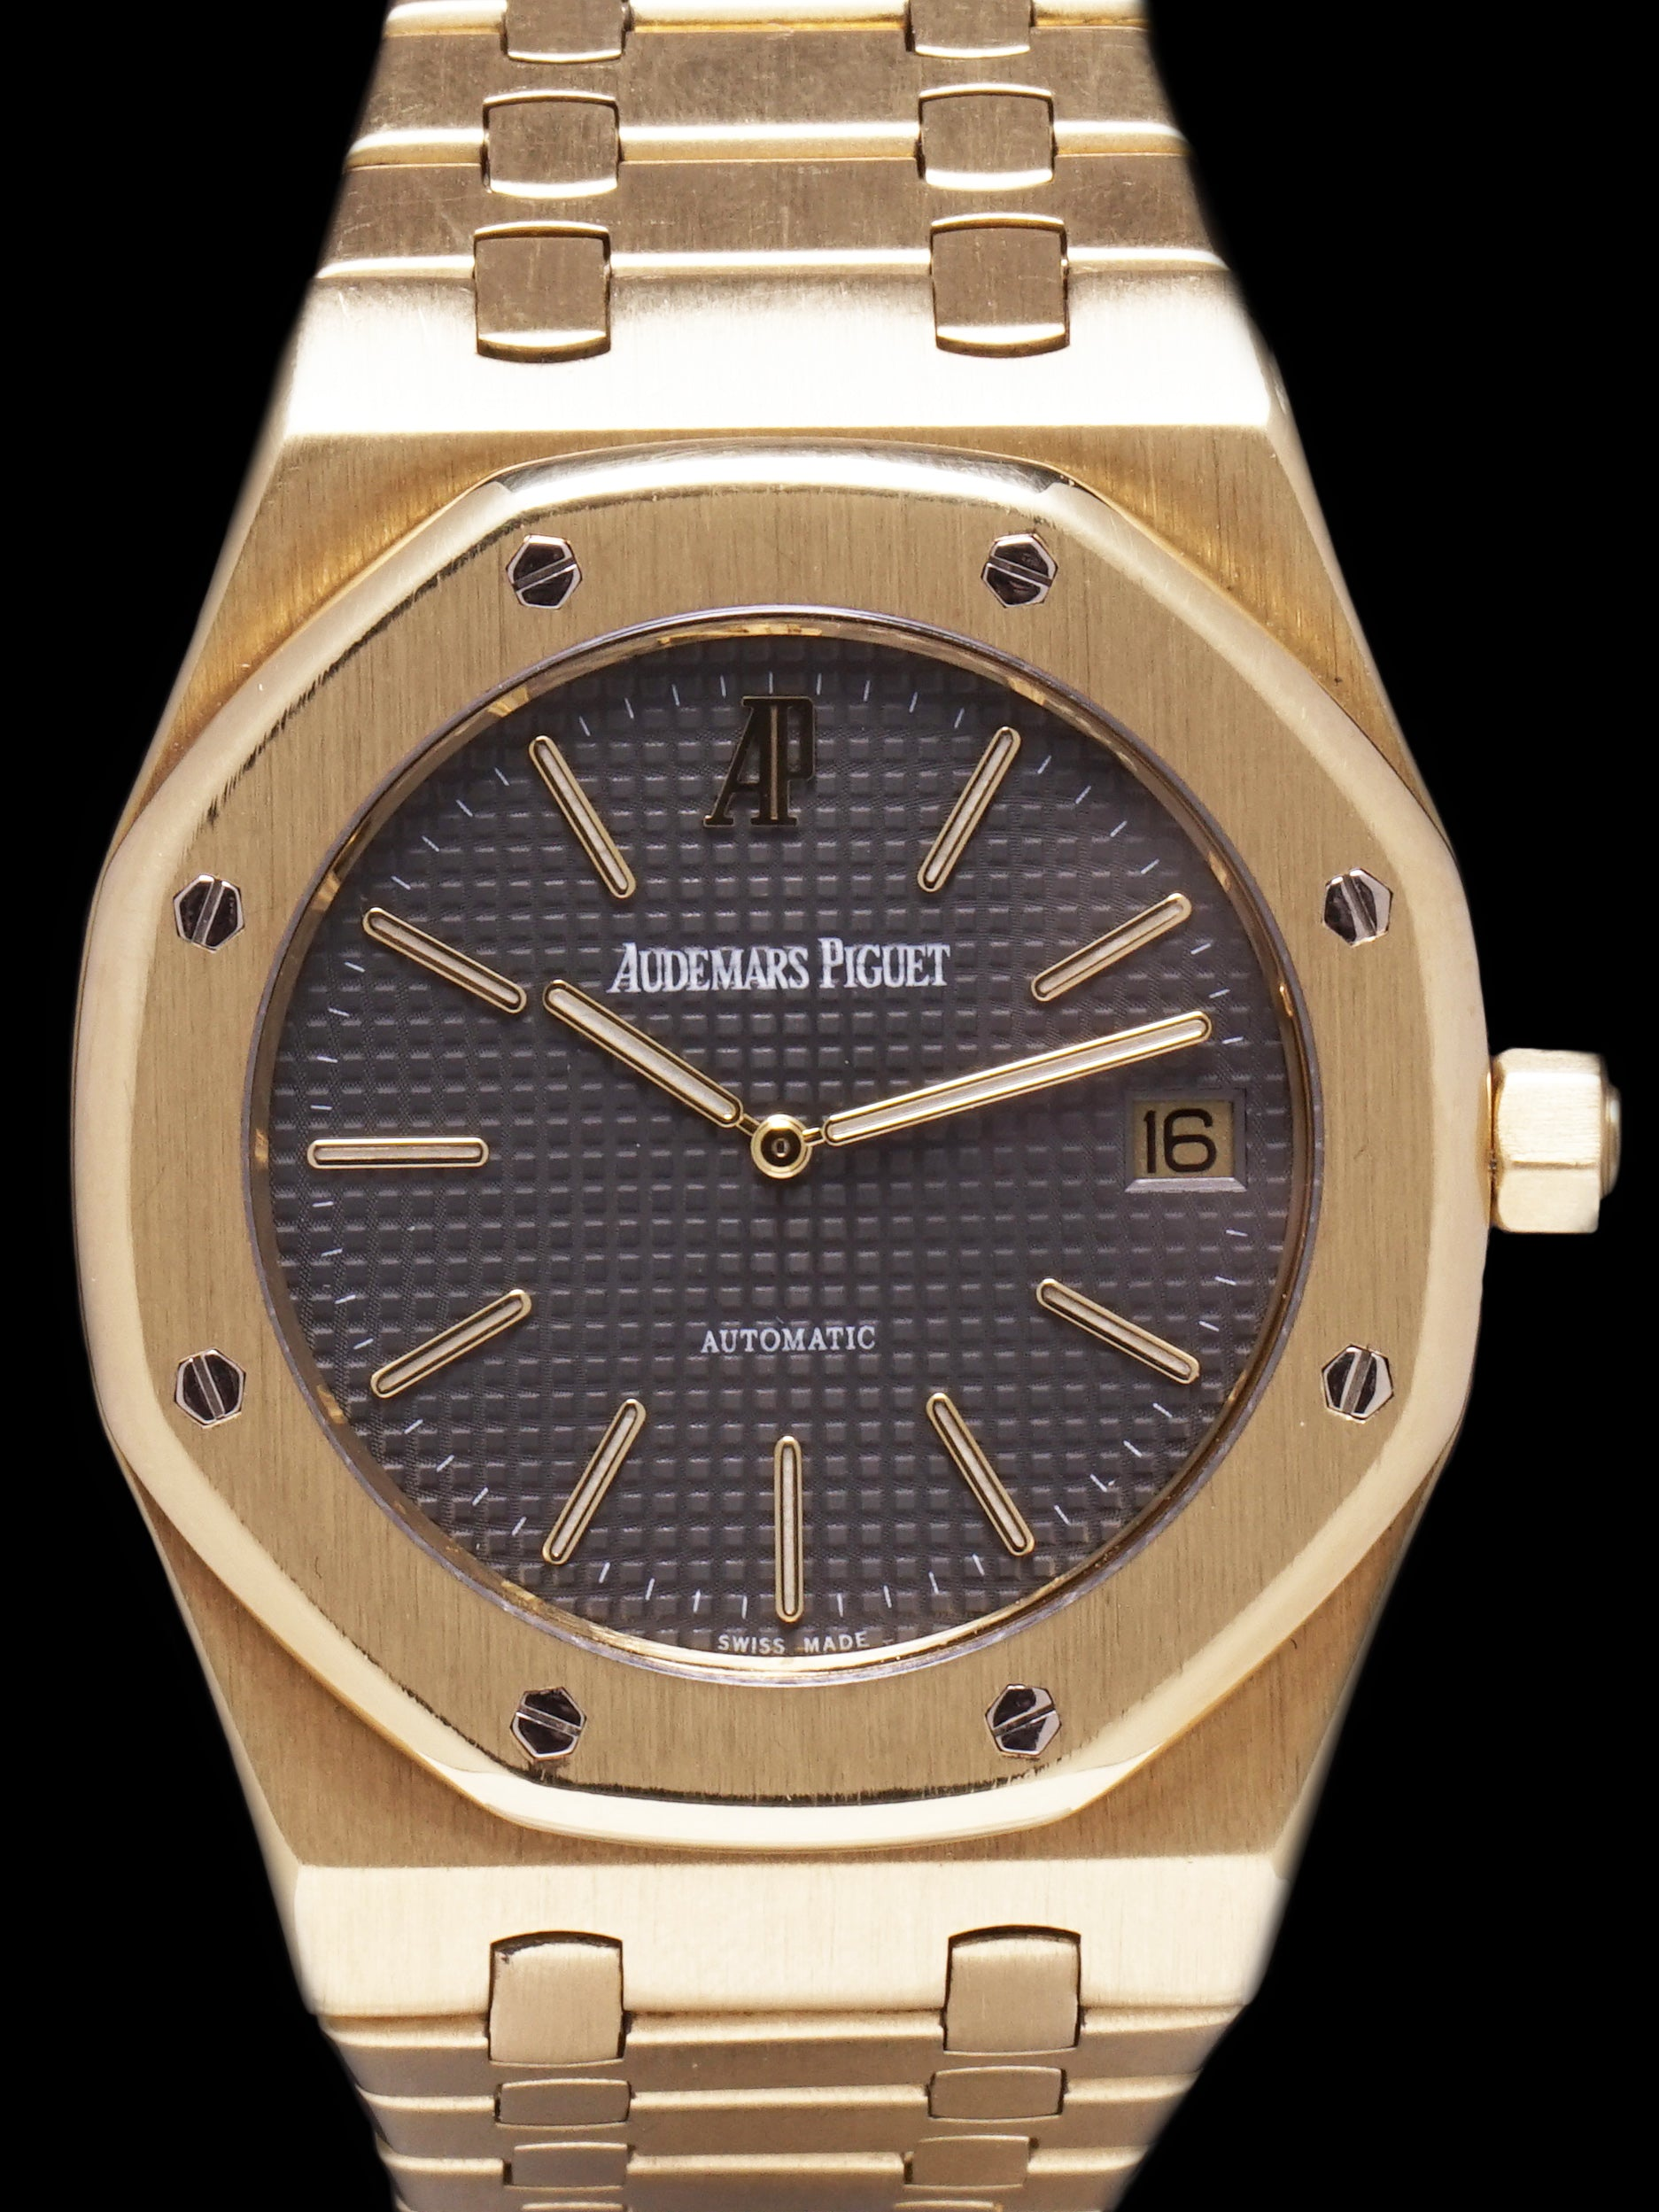 1980's Audemars Piguet Royal Oak 18K YG (Ref. 5402)